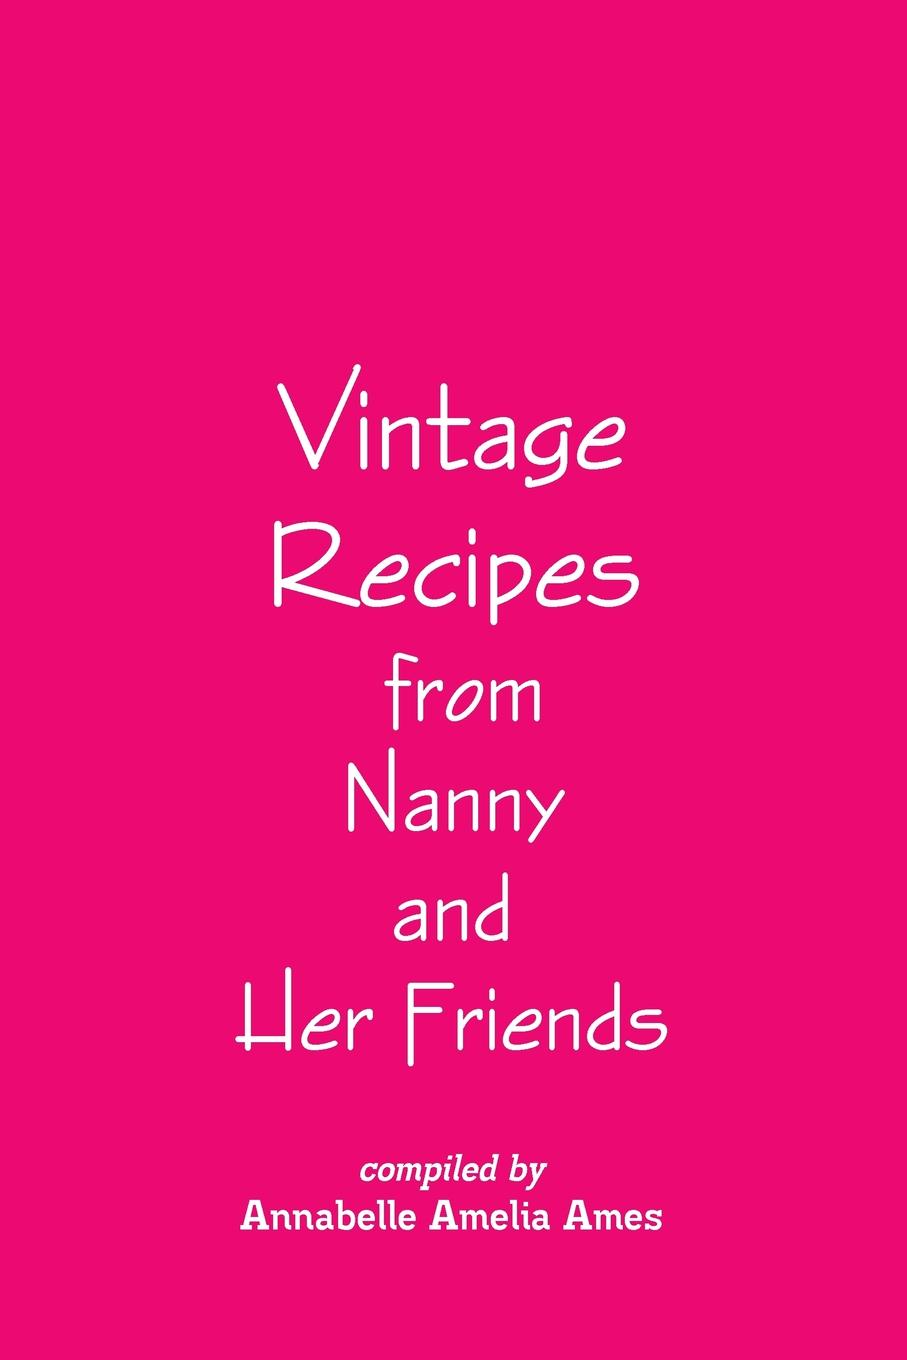 купить Annabelle Amelia Ames Vintage Recipes from Nanny and Her Friends онлайн